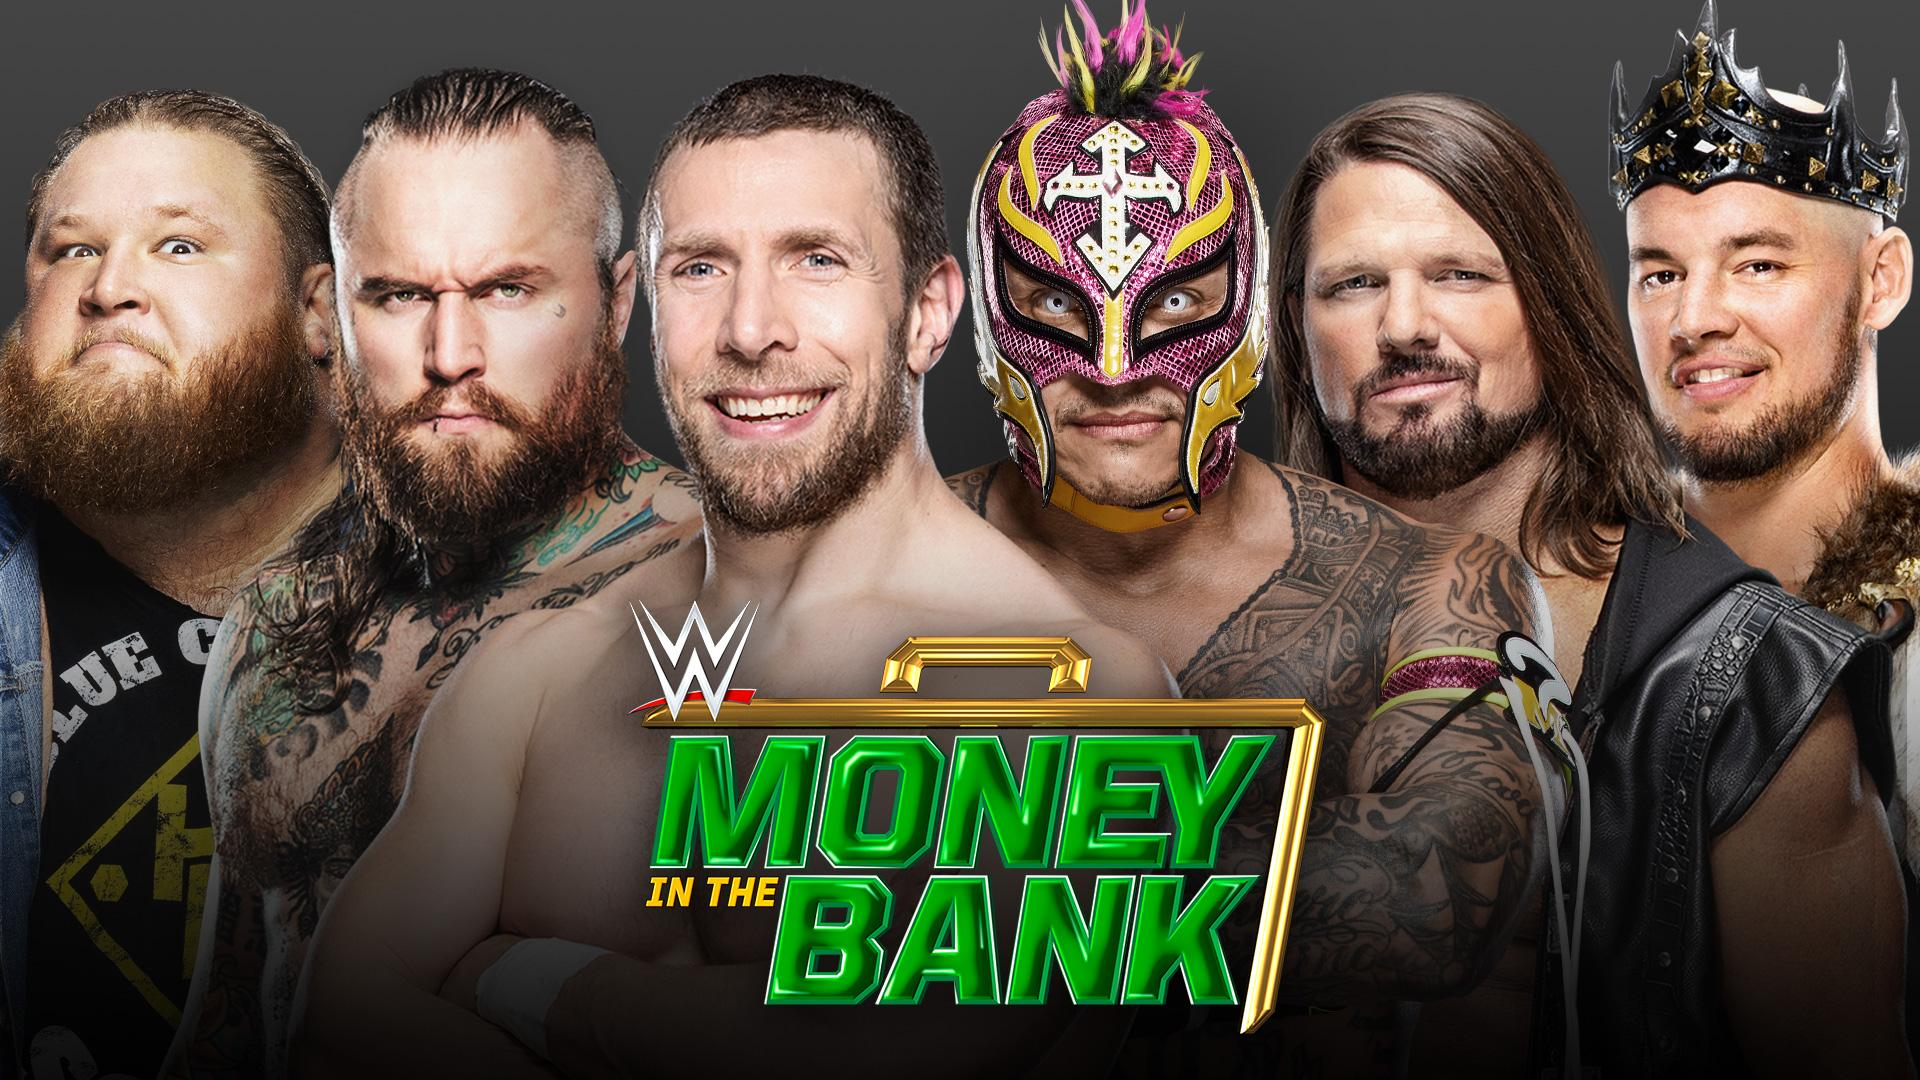 The Empty Arena Era of WWE continues with Money in the Bank.